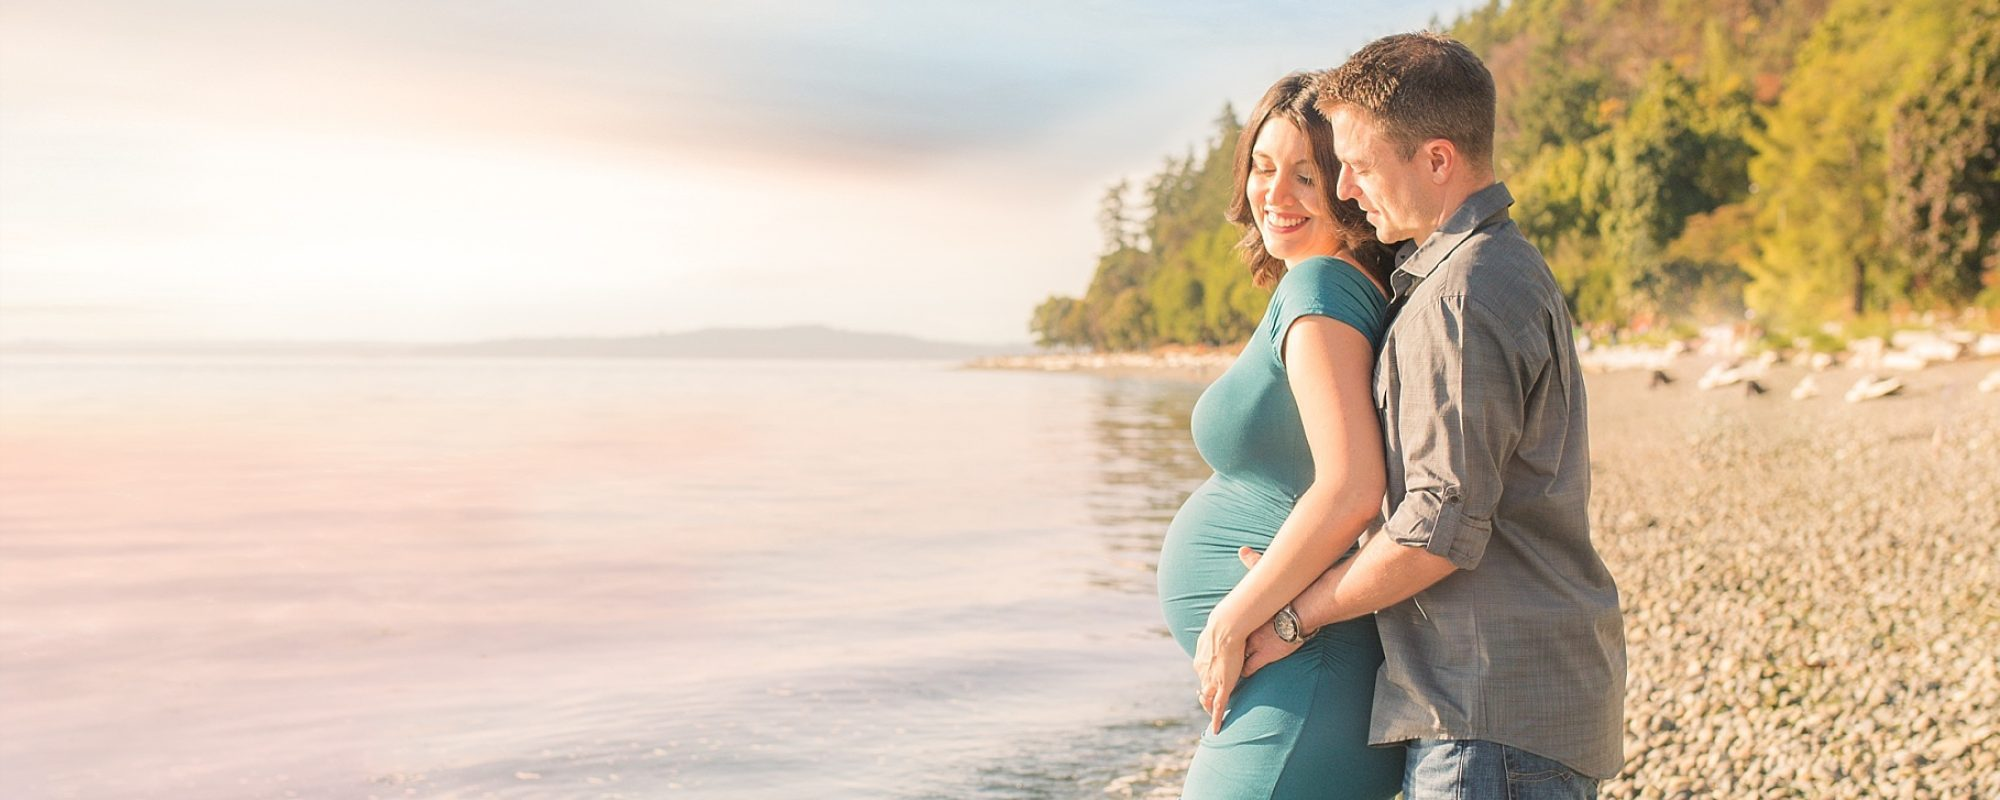 Pregnant wife and husband joyfully standing beside a lake.